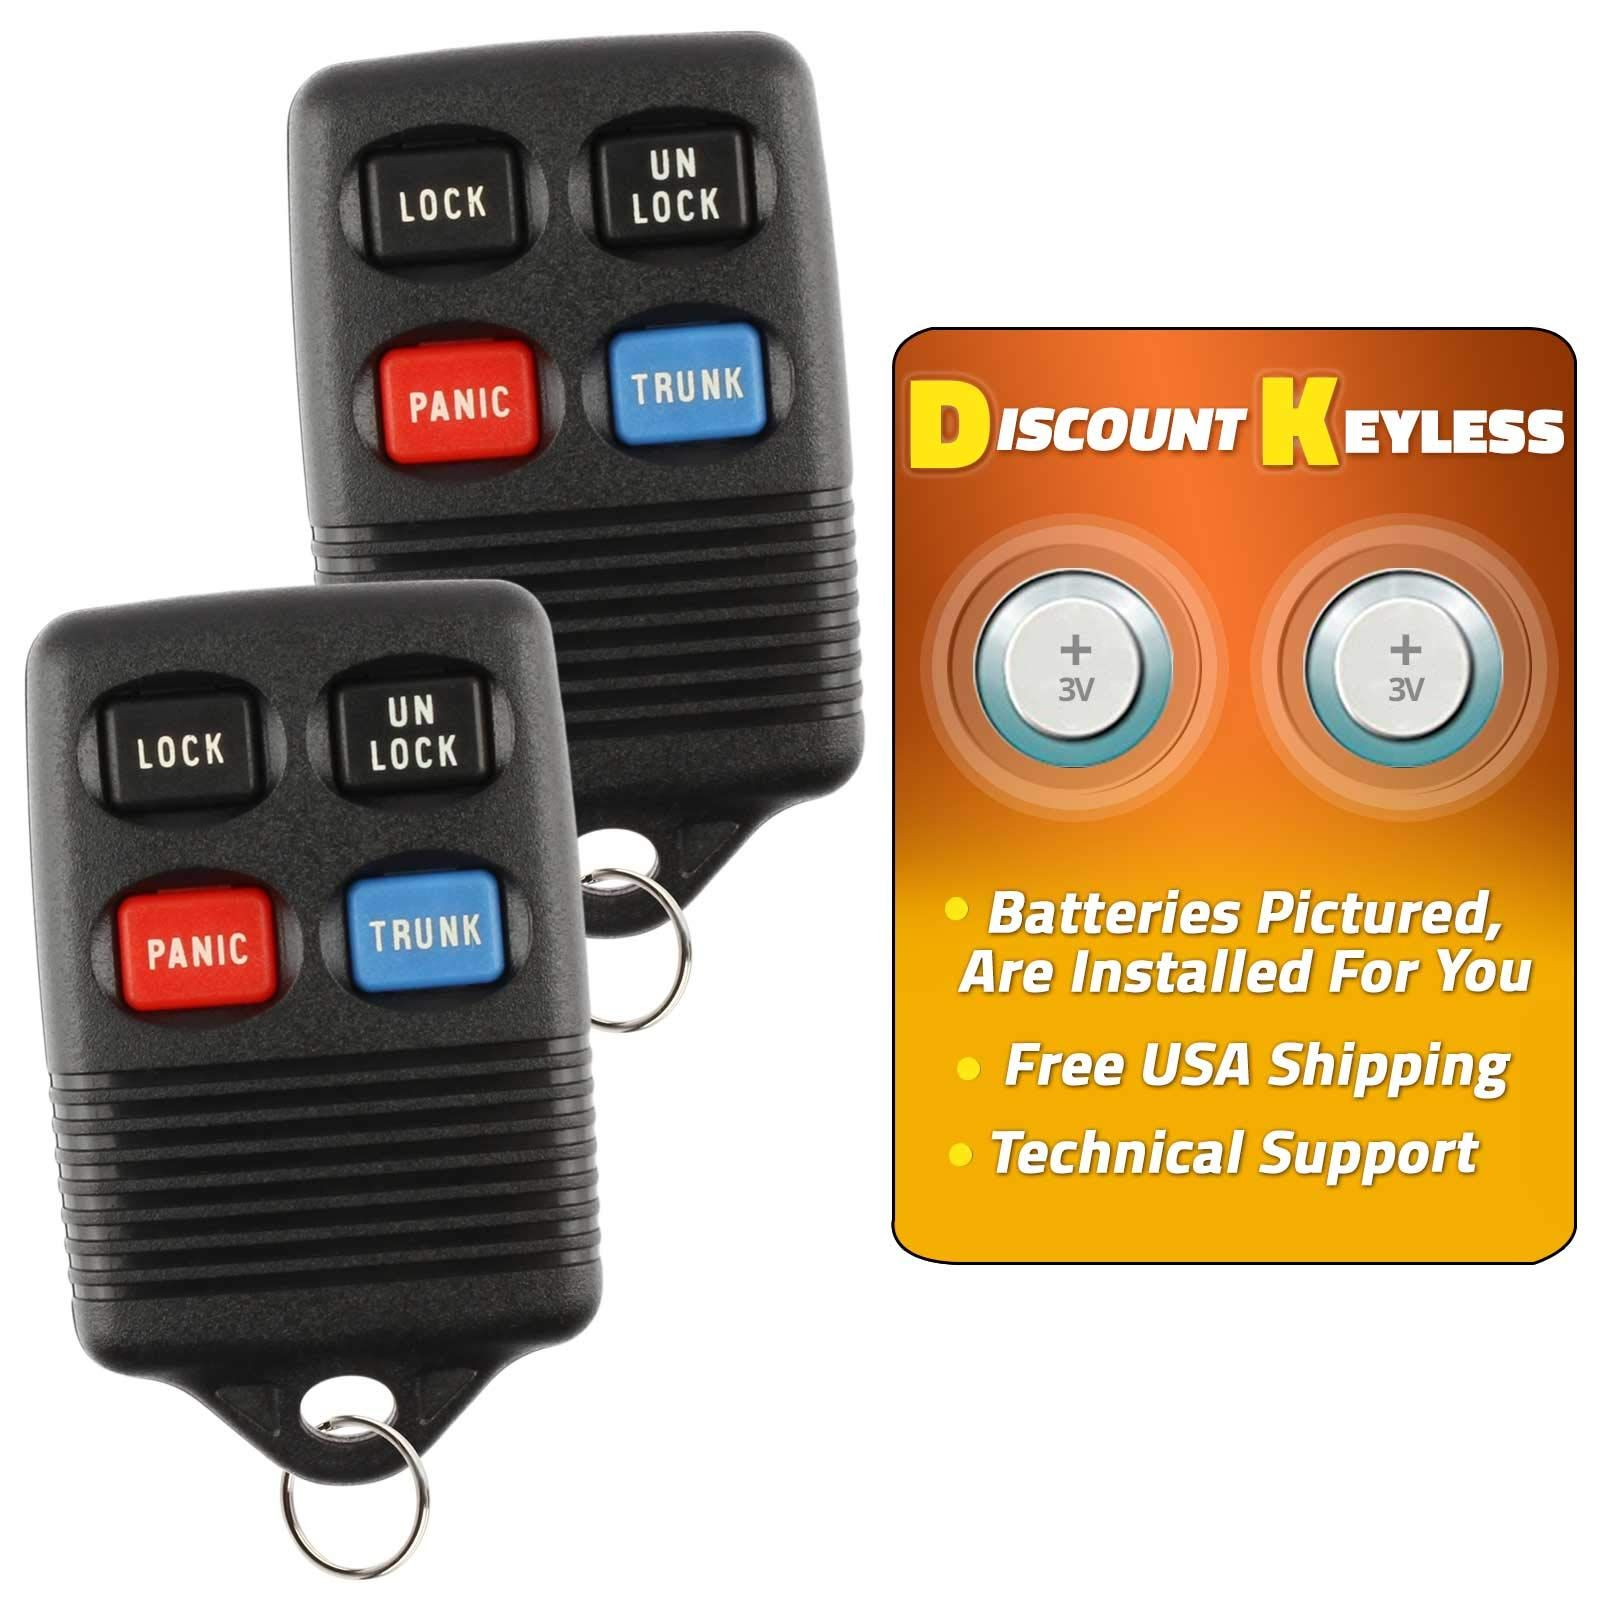 Discount keyless replacement trunk key fob car entry